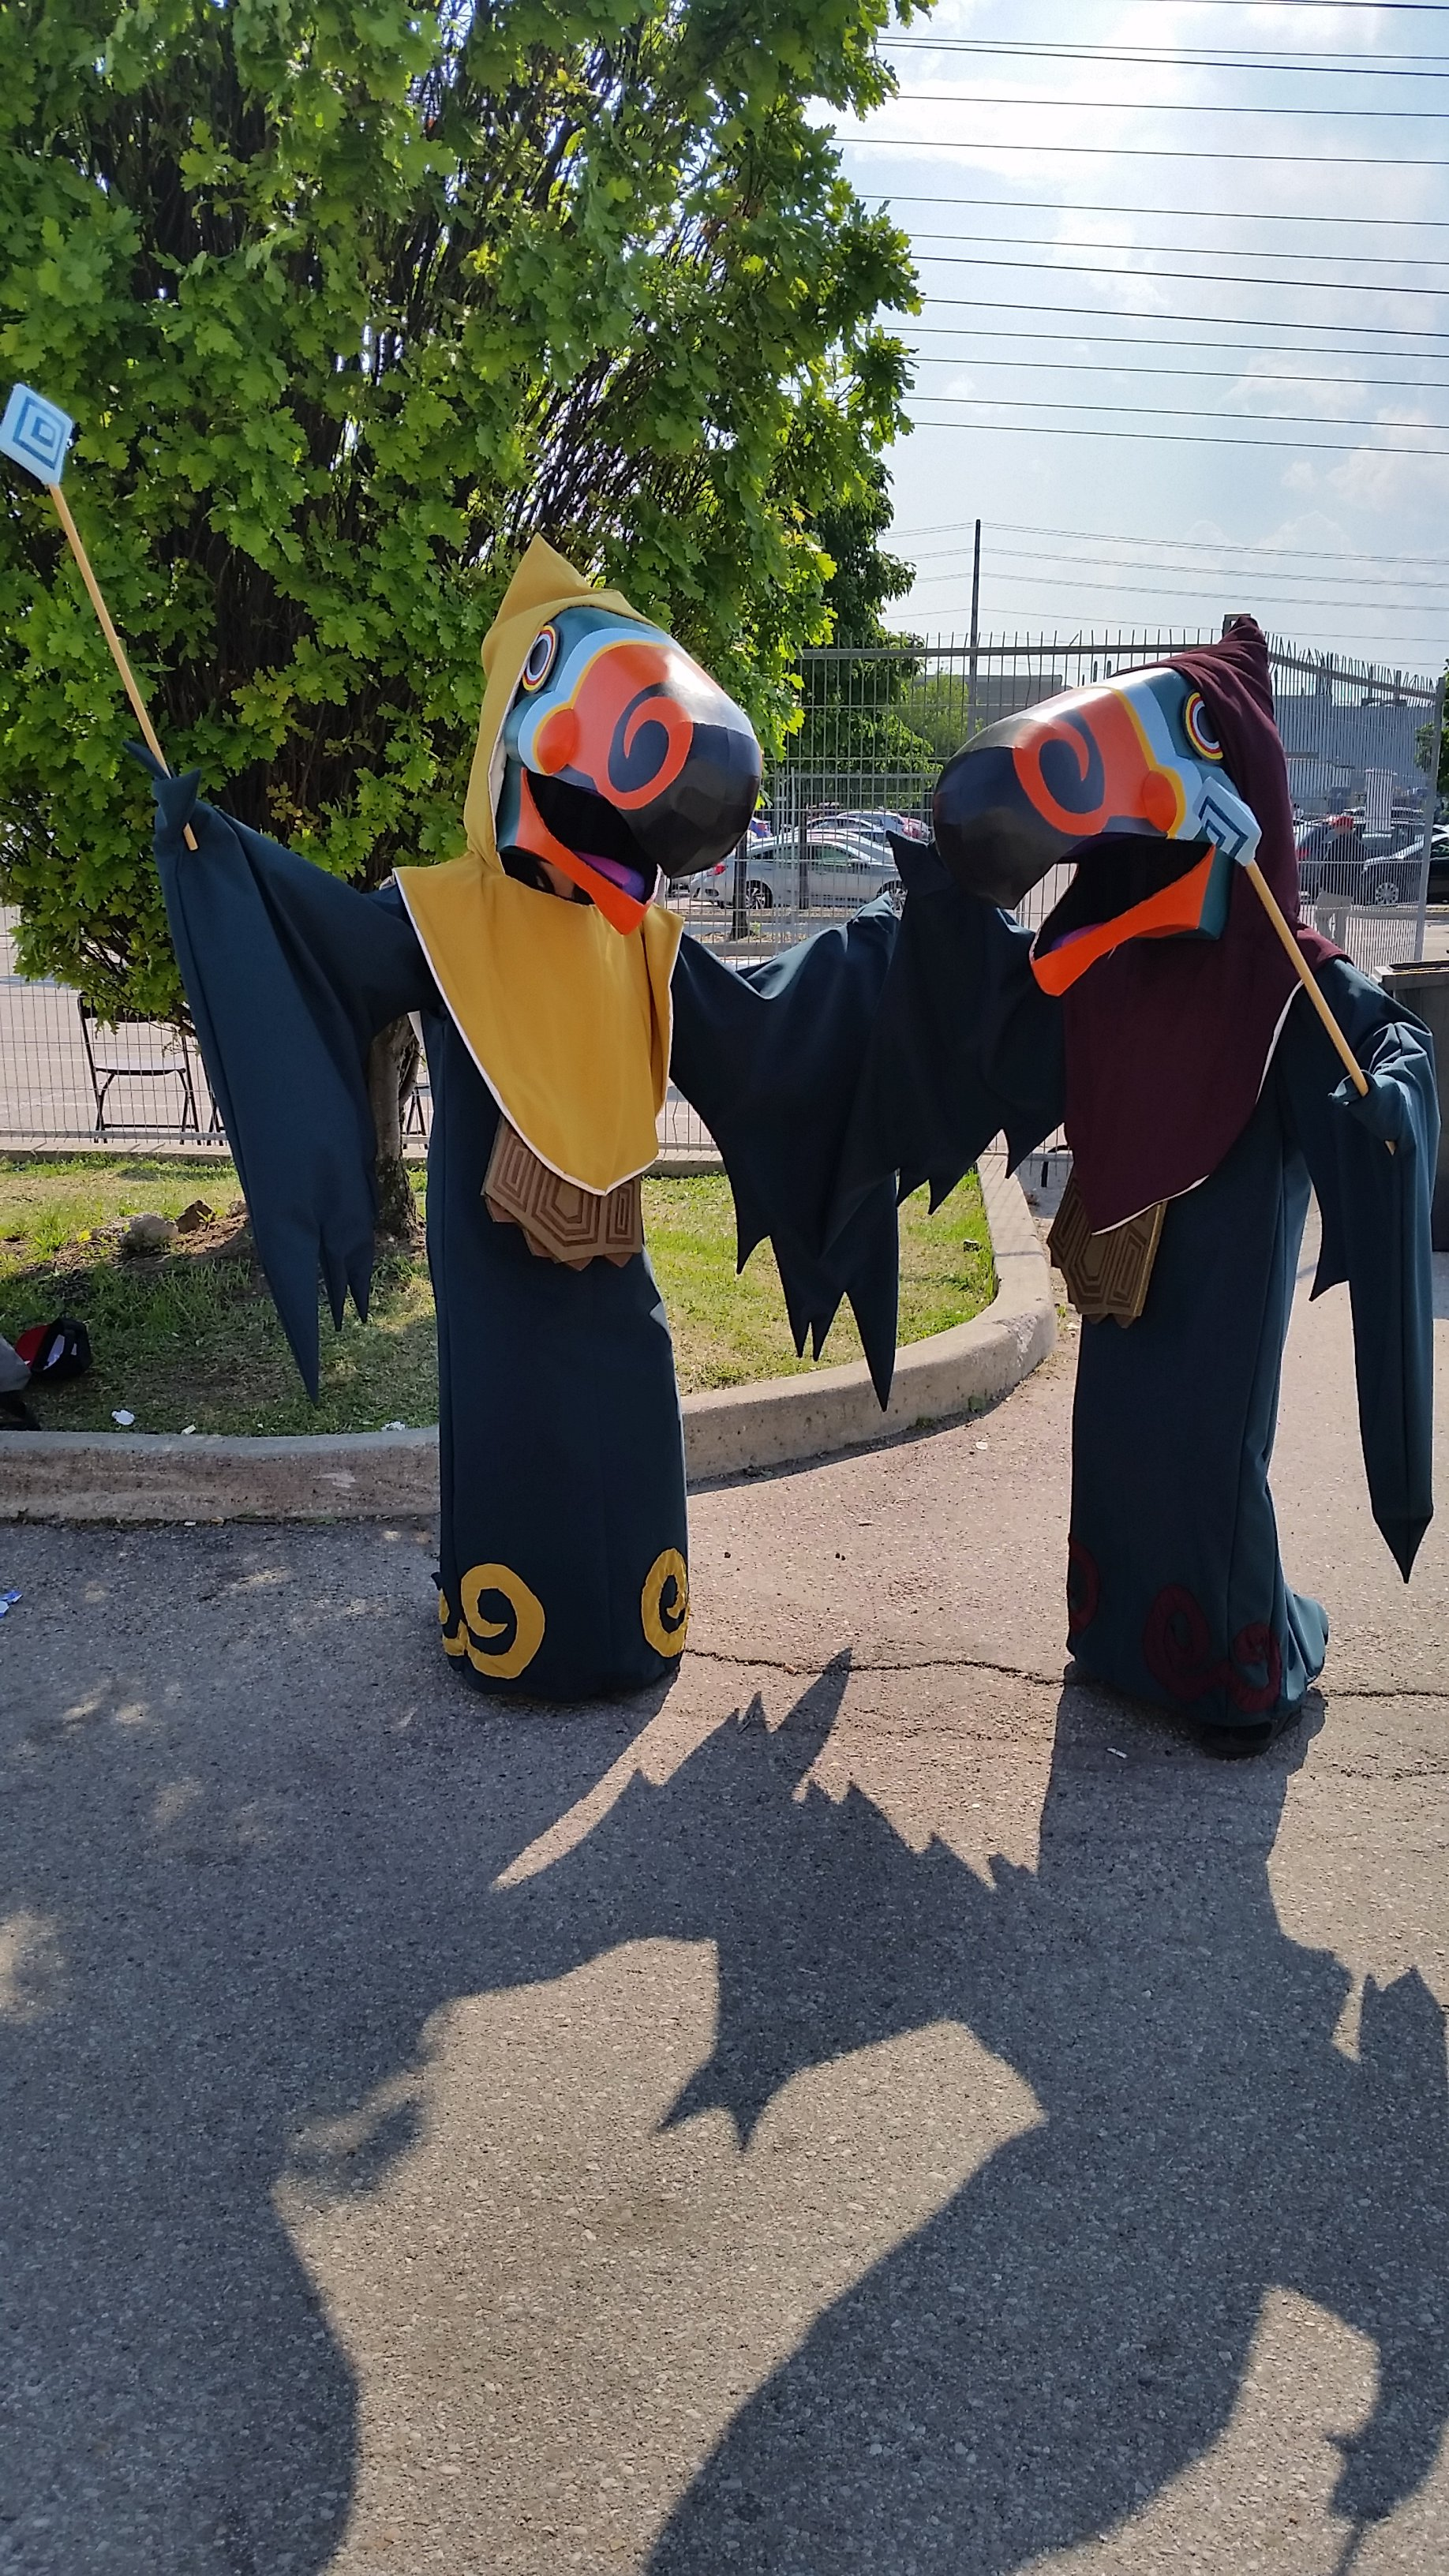 Two cosplays of the Wizzrobe enemies from The Legend of Zelda Wind Waker. They each have different hood colours - one in yellow and the other in maroon.